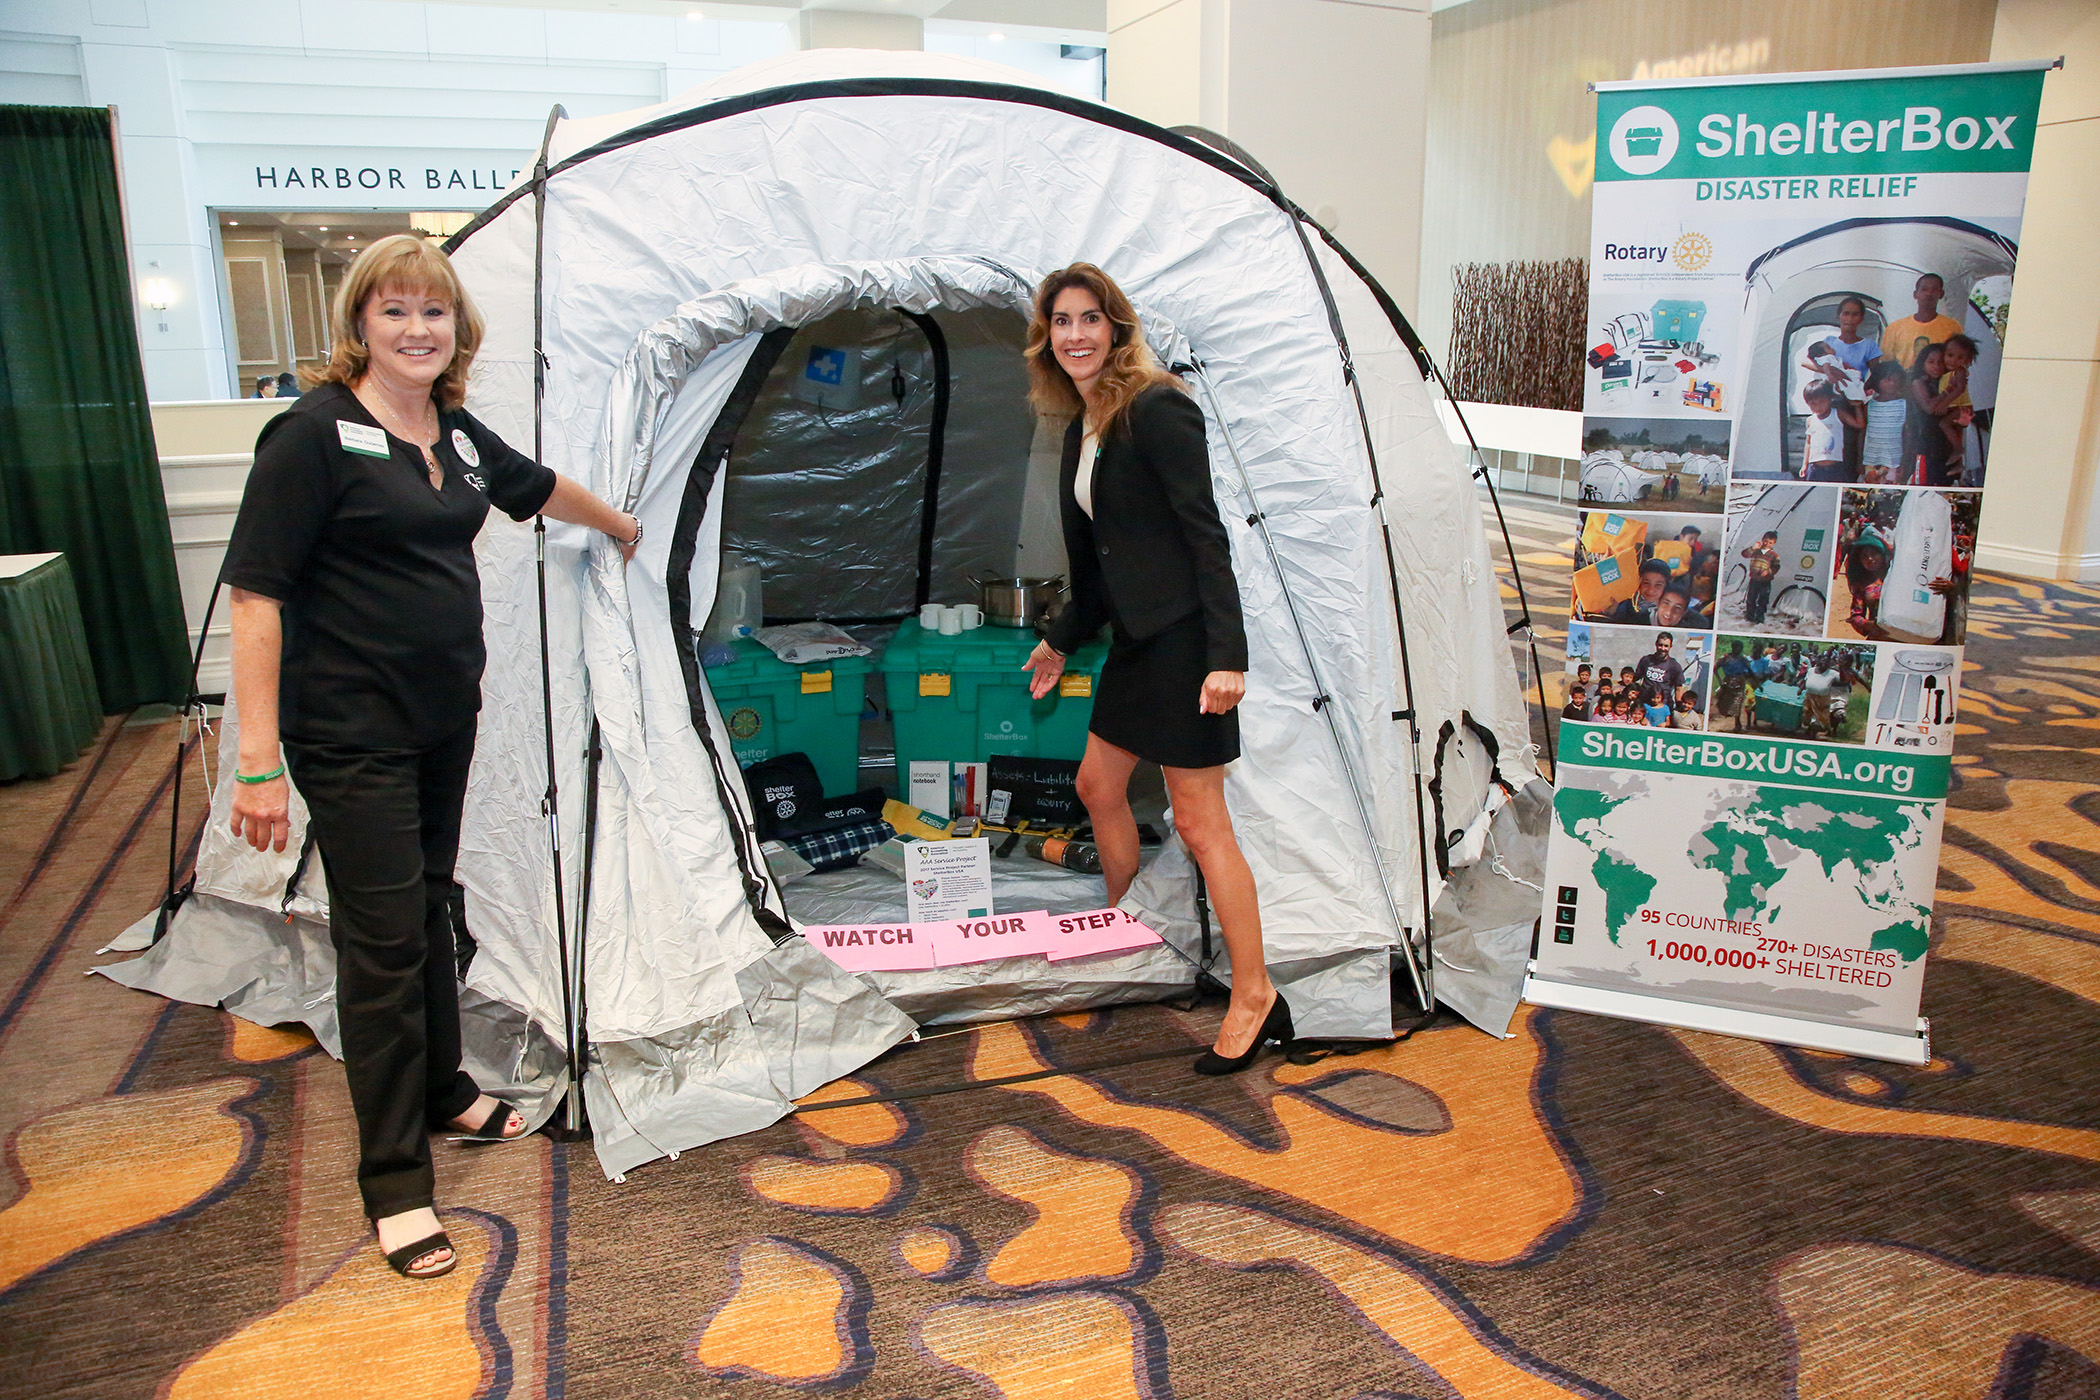 ShelterBox tent with Exhibit